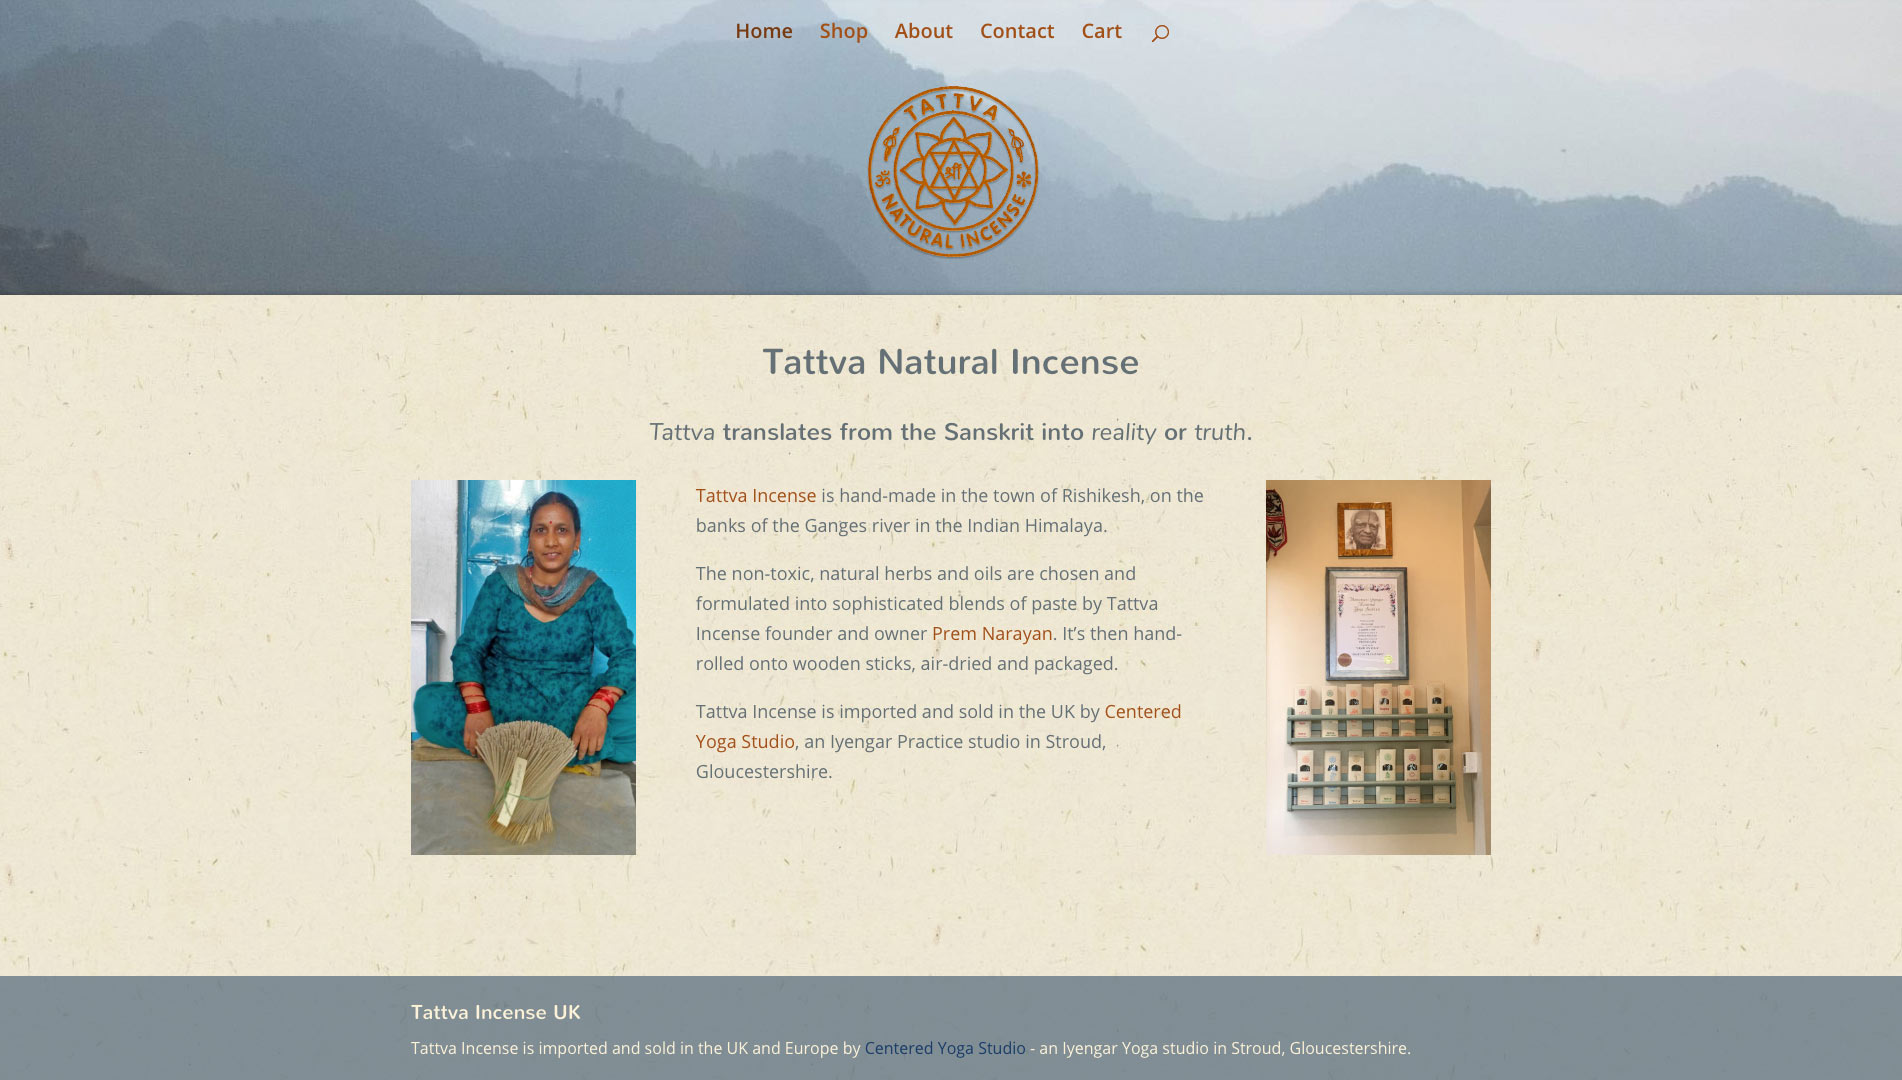 Tattva Incense